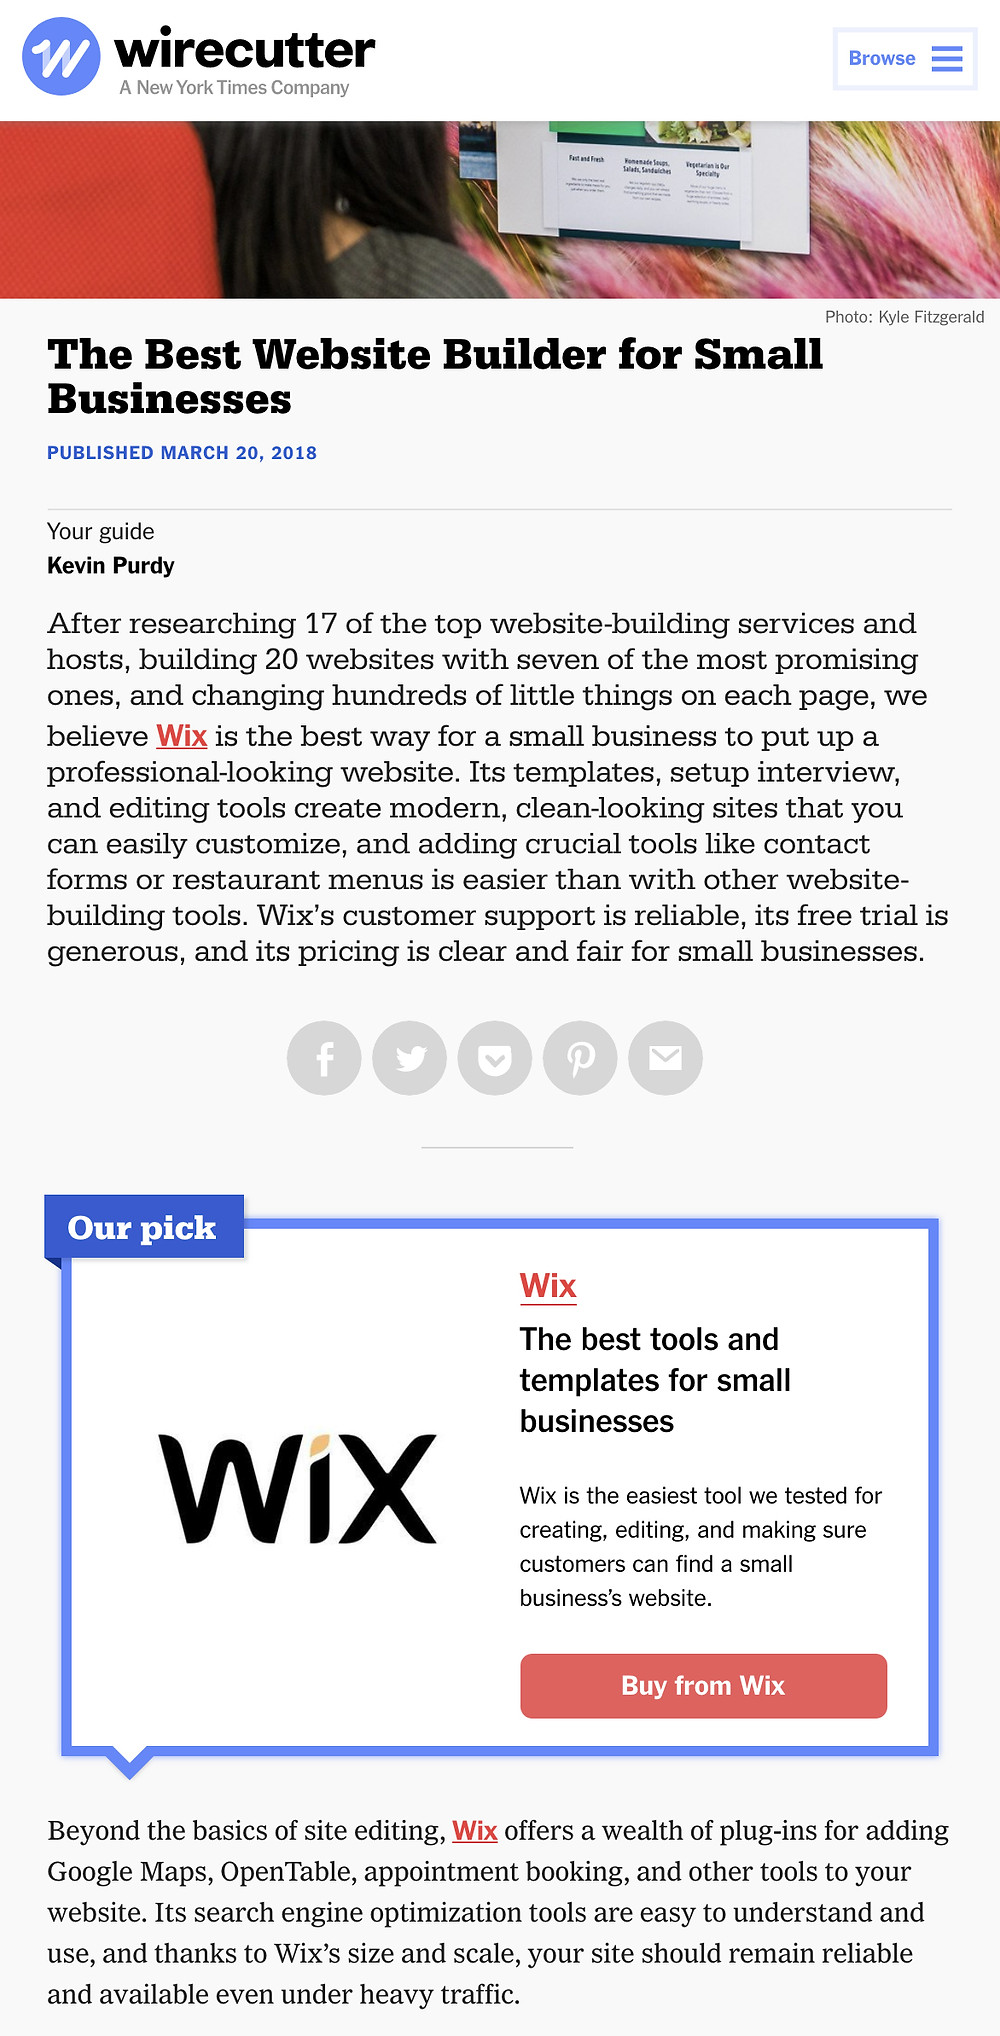 2018 Wix Review in Wirecutter.com